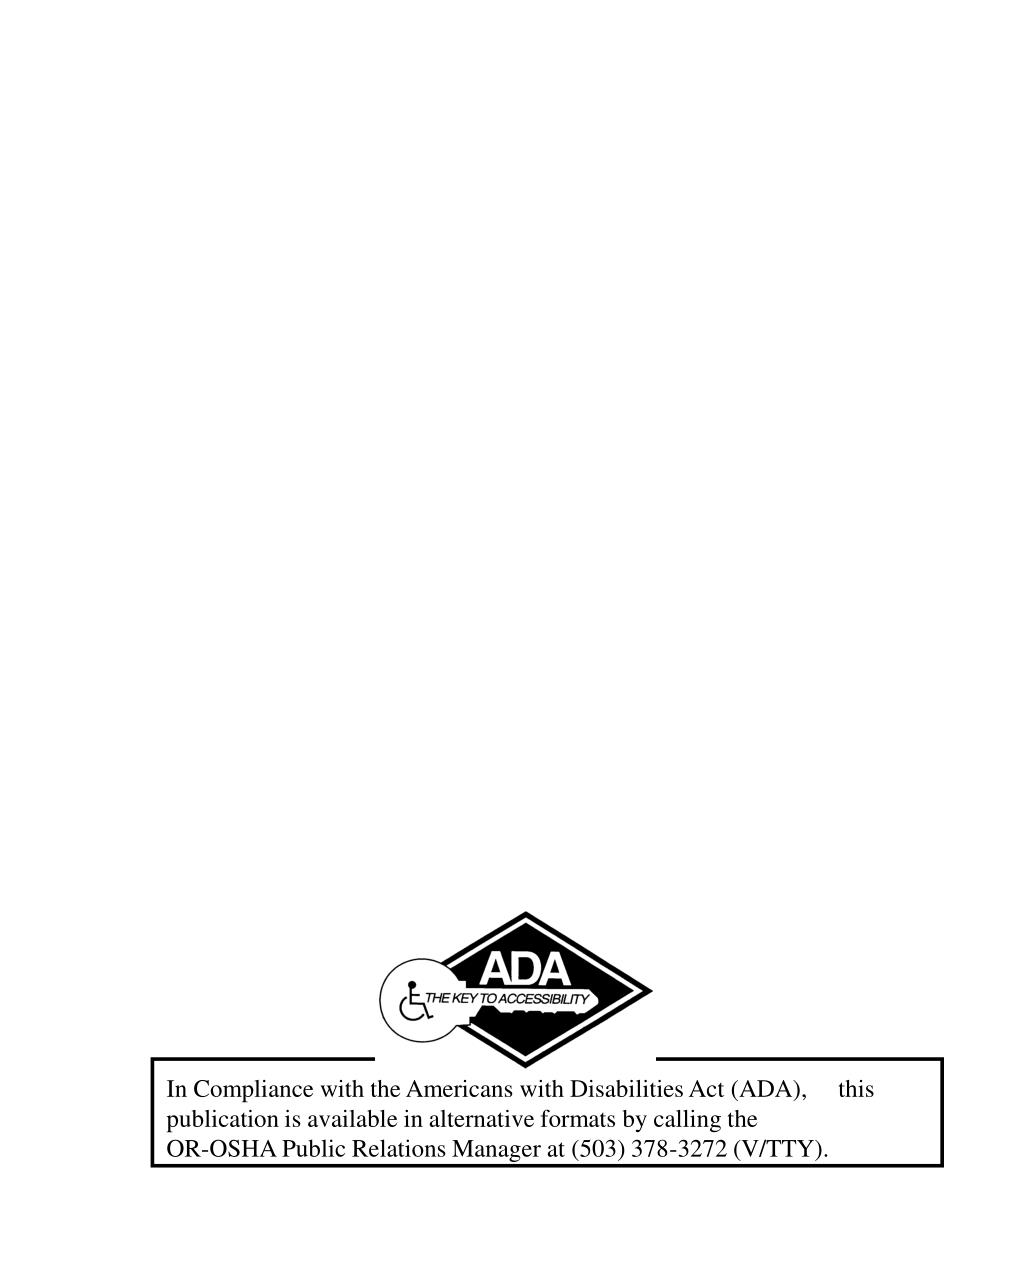 In Compliance with the Americans with Disabilities Act (ADA),     this publication is available in alternative formats by calling the                            OR-OSHA Public Relations Manager at (503) 378-3272 (V/TTY).